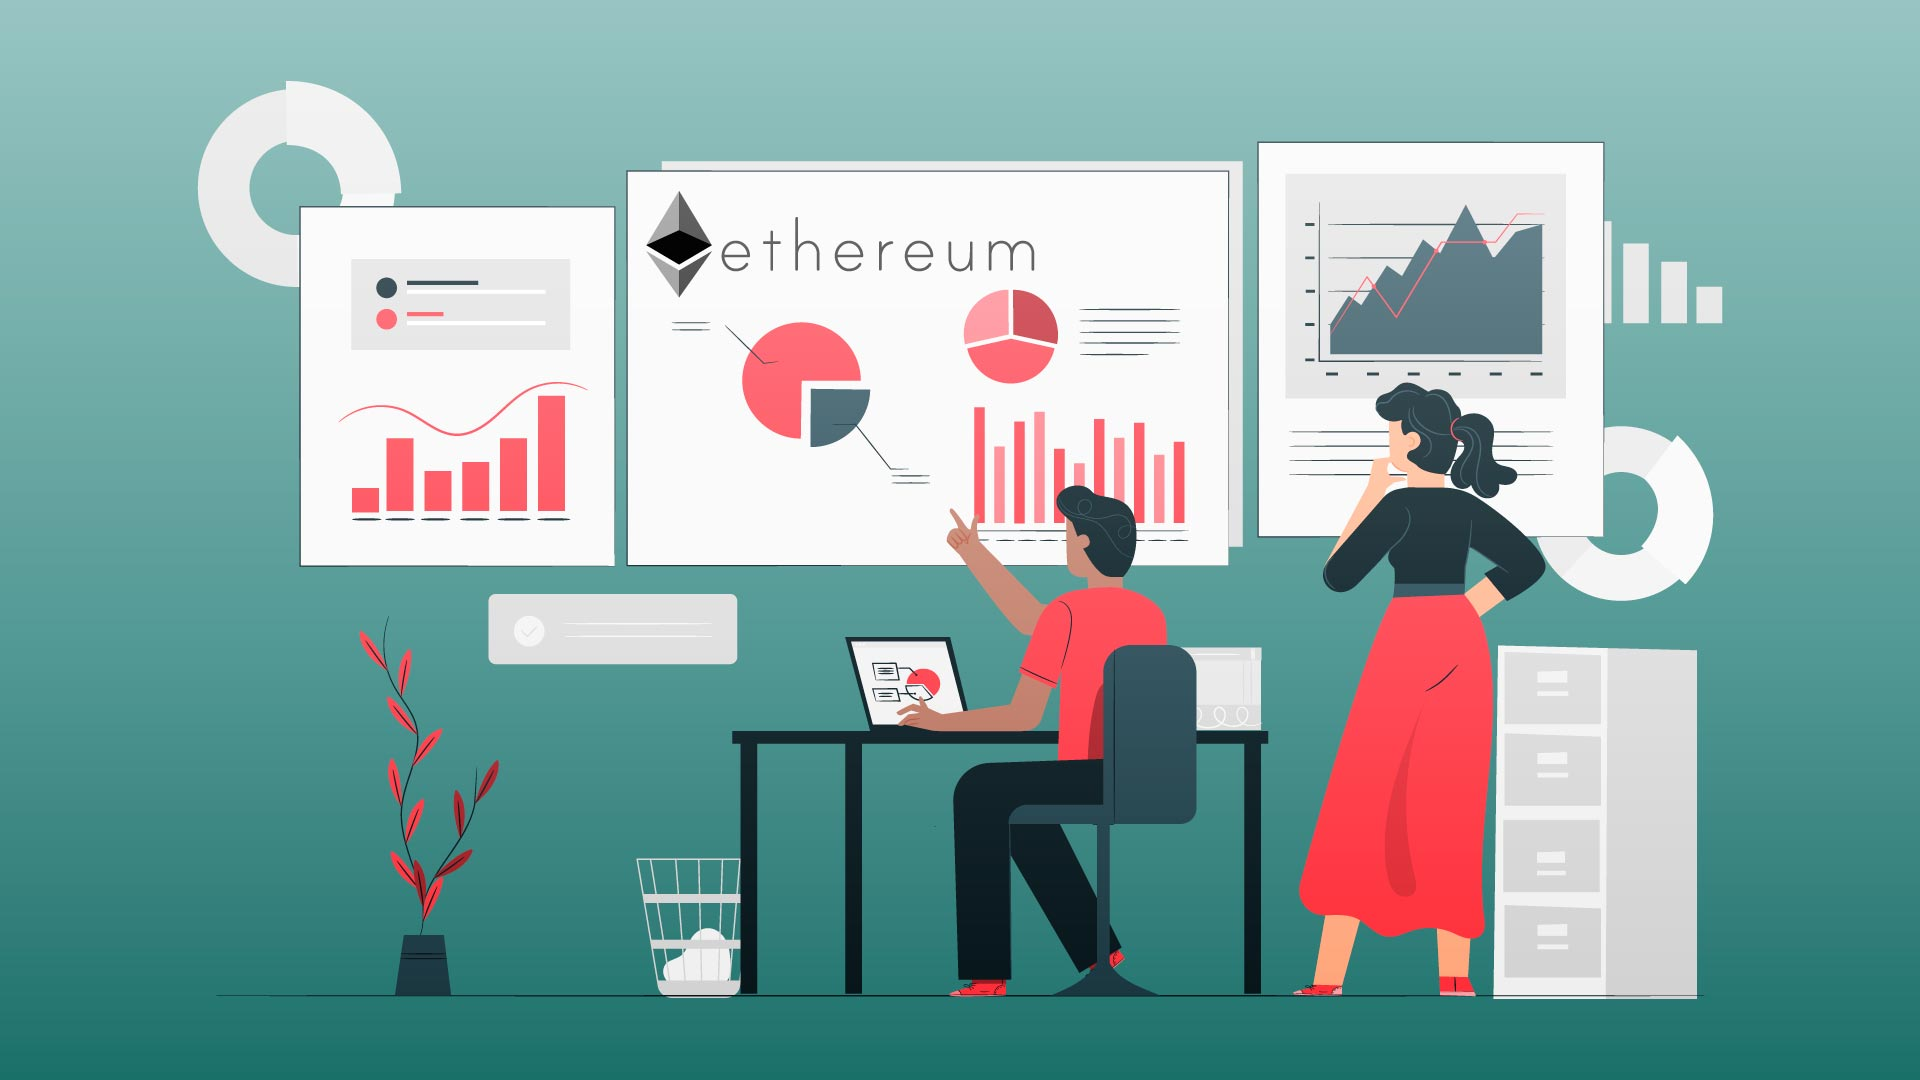 Ethereum Price Explodes Above $700 but Appears Intraday Bearish